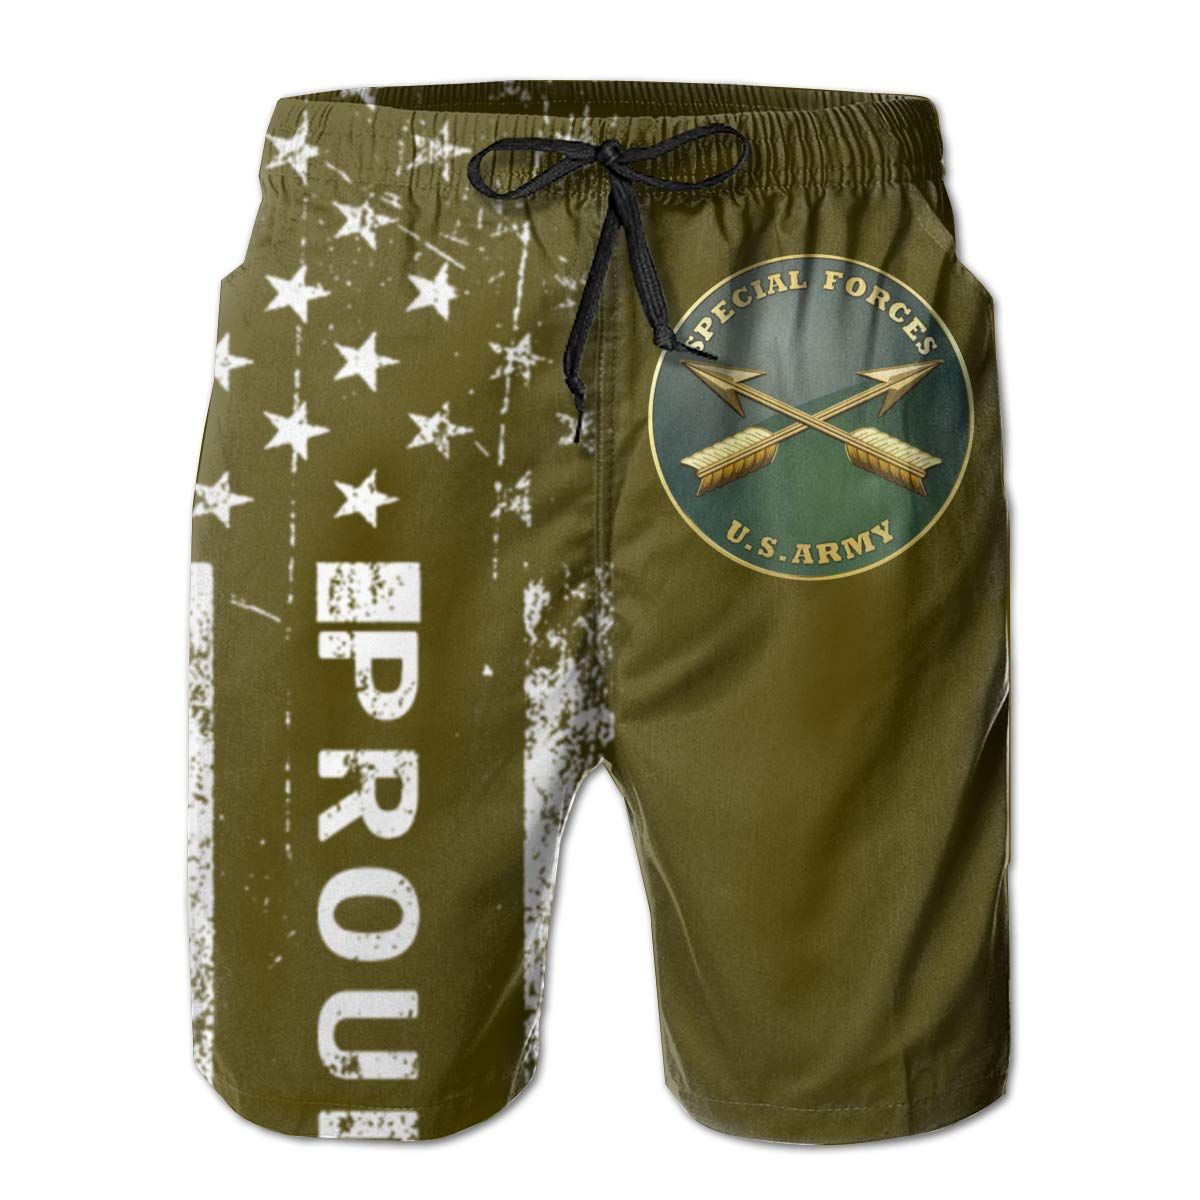 SUNSUNNY US Army Special Forces Mens Boardshorts Swim Trunks Beach Athletic Shorts